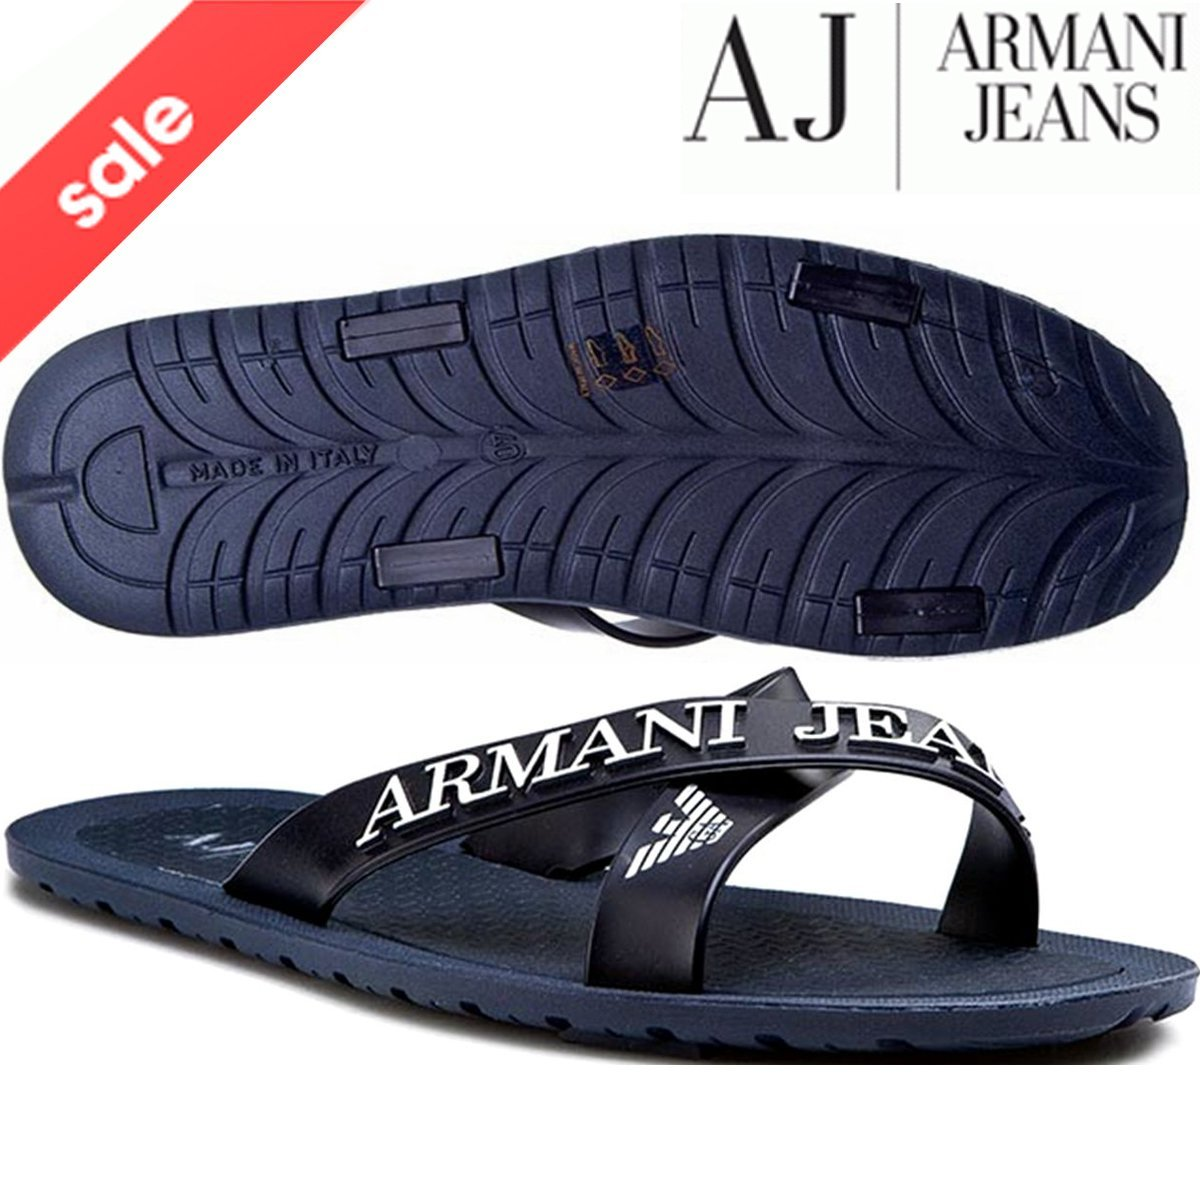 d2766f4bd418 BNWT EA7 Emporio Armani Flip Flops Open Toes Eagle Logo Mules Slippers  Sandals Beach Shoes (UK8 EU41)  Amazon.co.uk  Shoes   Bags